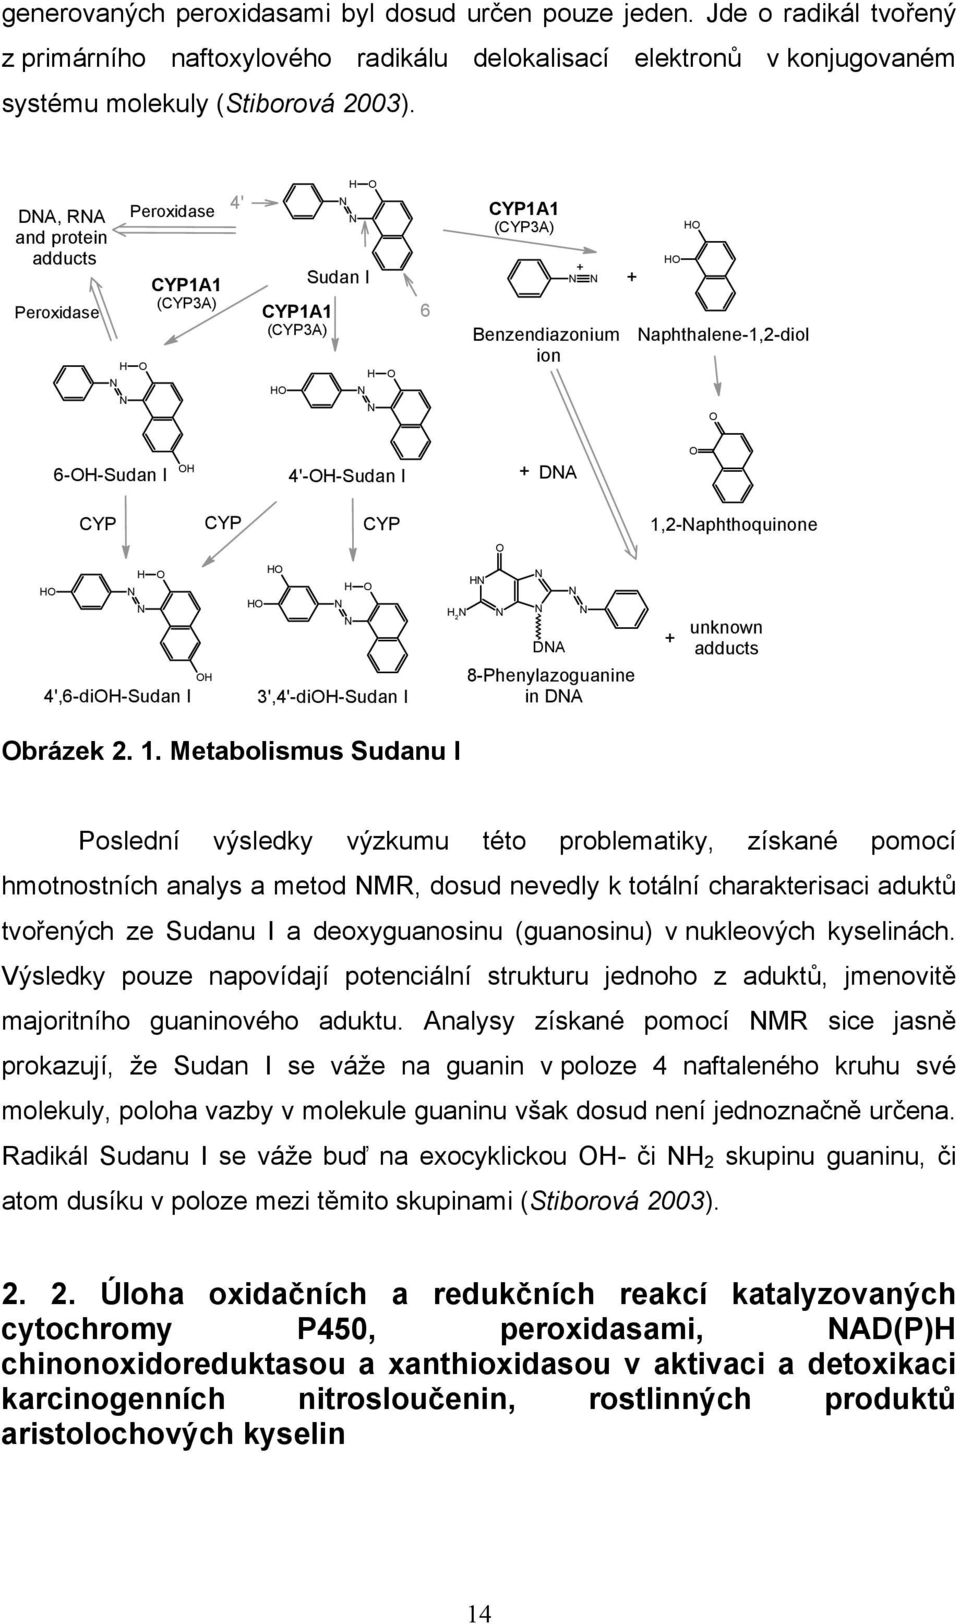 4'-H-Sudan I + DNA CYP CYP CYP H H N N H H H N N H 4',6-diH-Sudan I 3',4'-diH-Sudan I H 2 N HN N N N N N DNA 8-Phenylazoguanine in DNA 1,